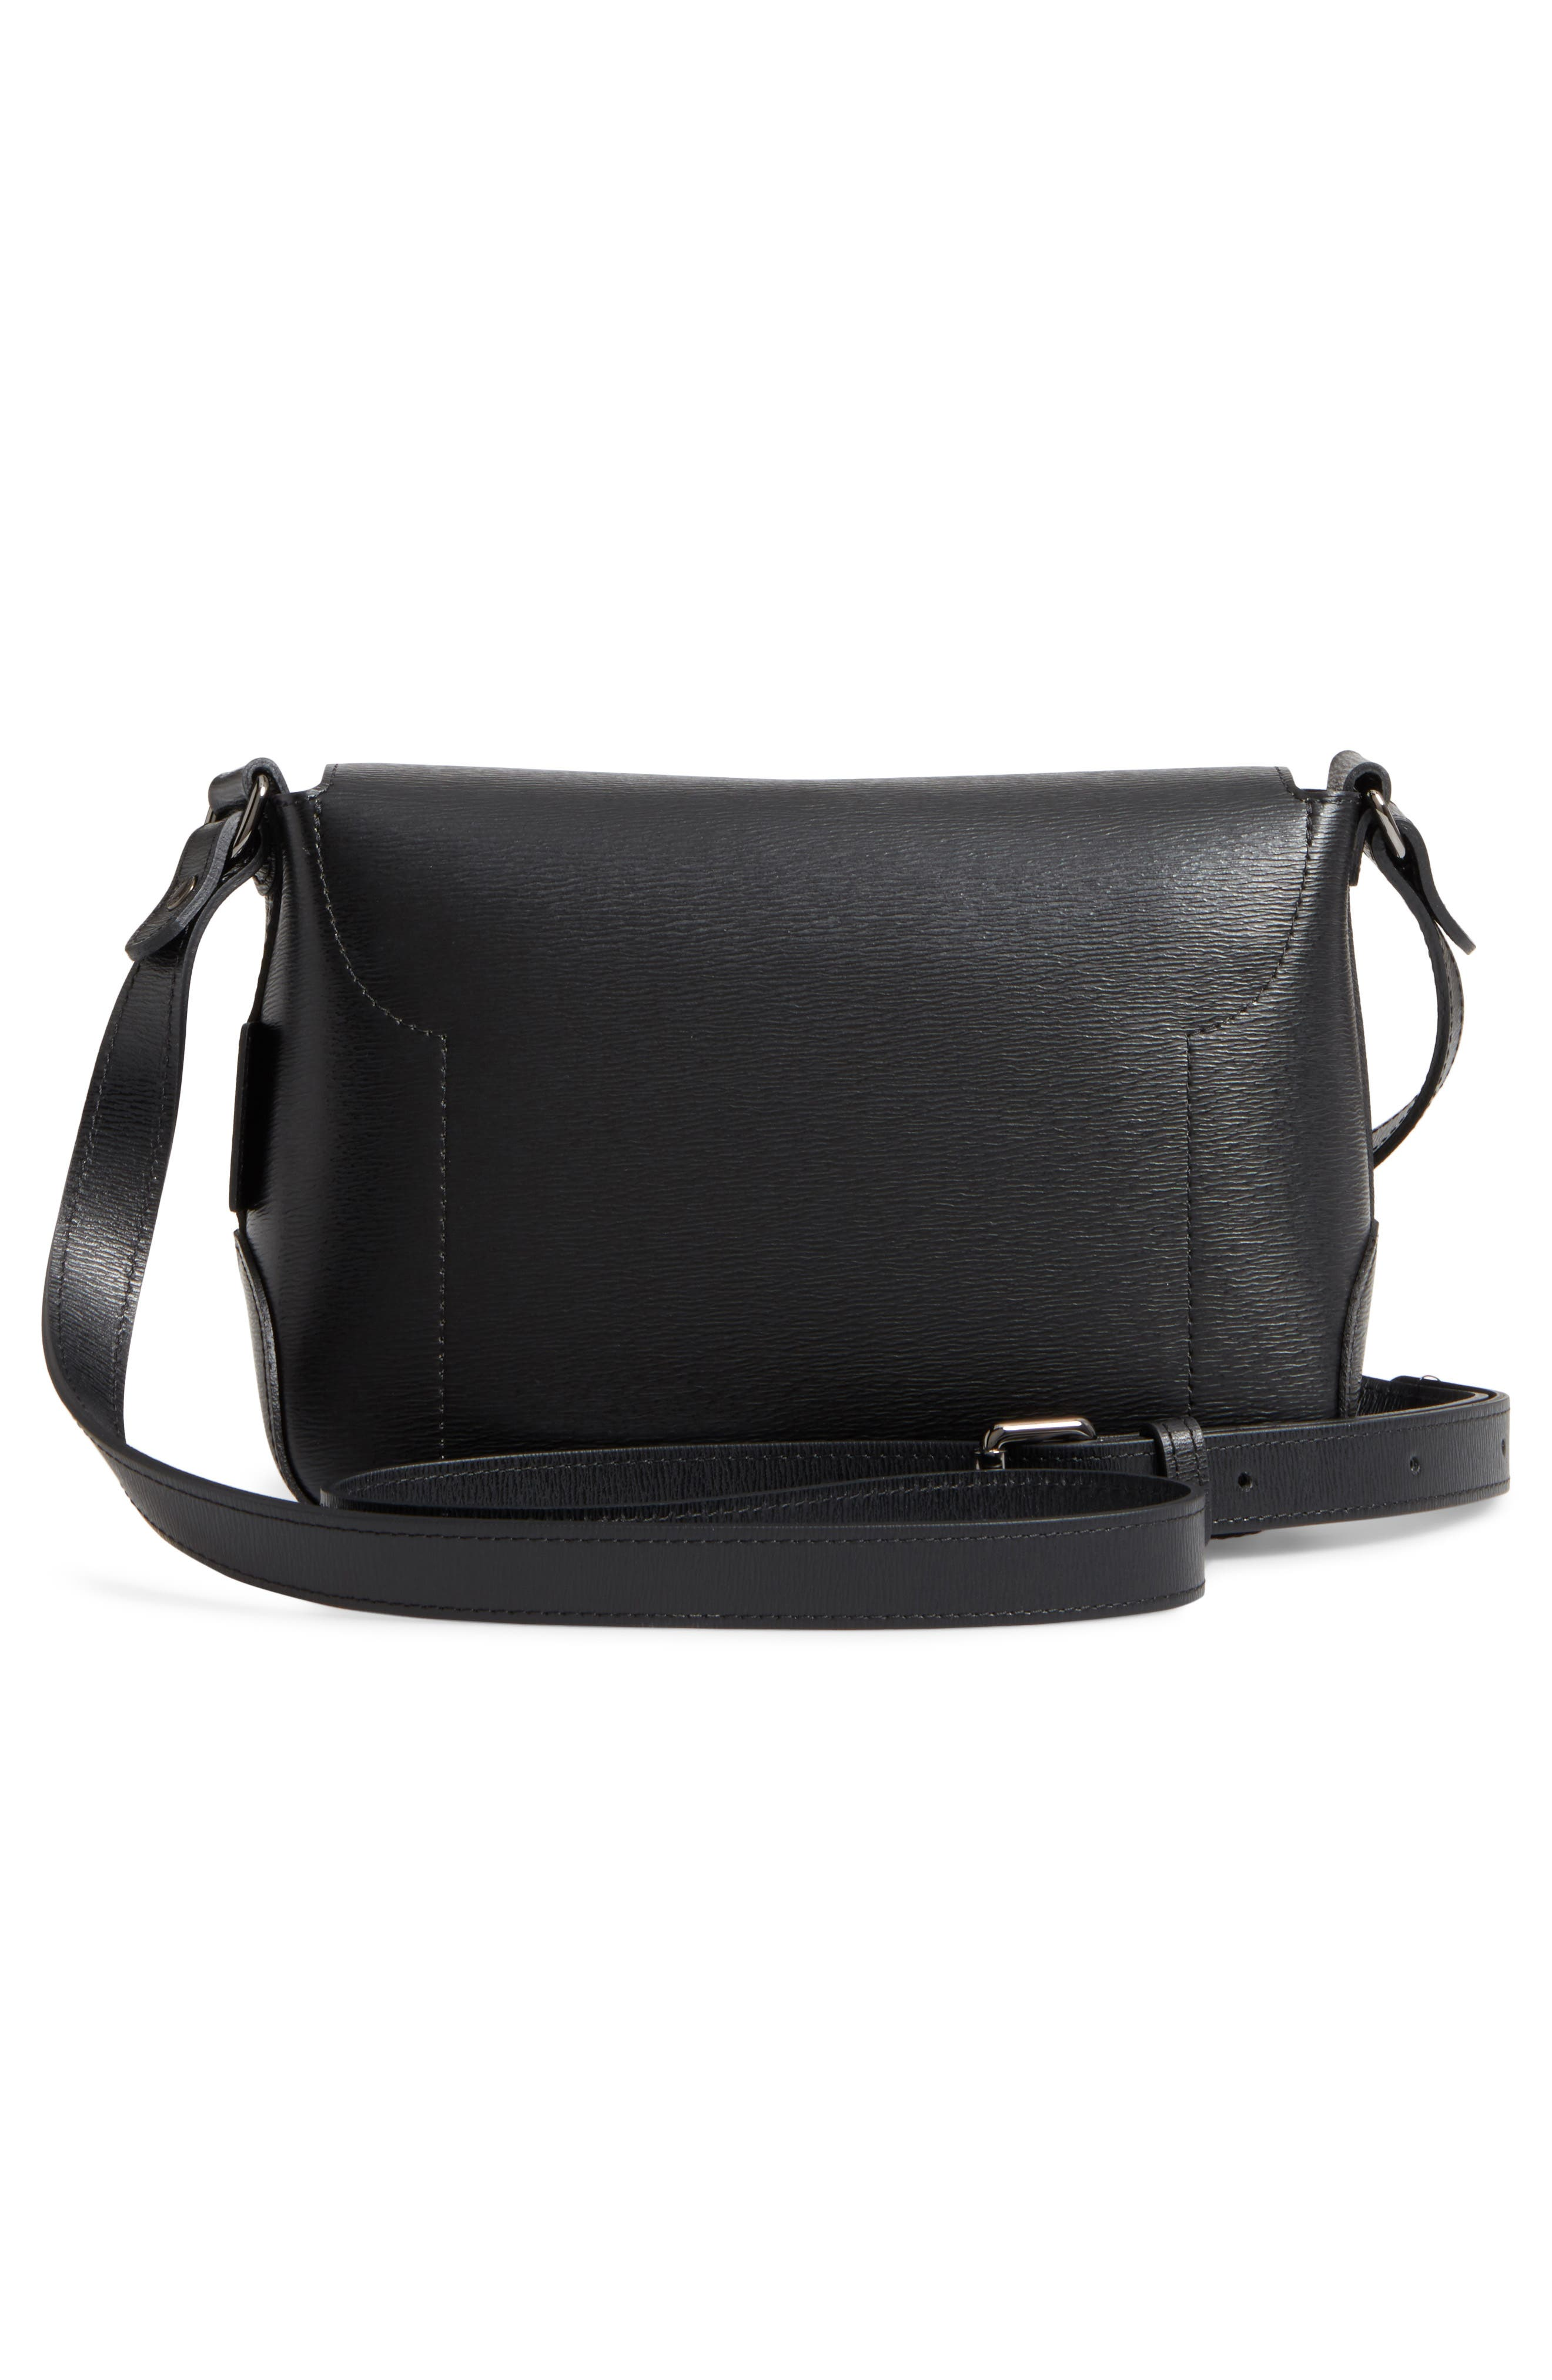 Roseau Leather Crossbody Bag,                             Alternate thumbnail 3, color,                             Black